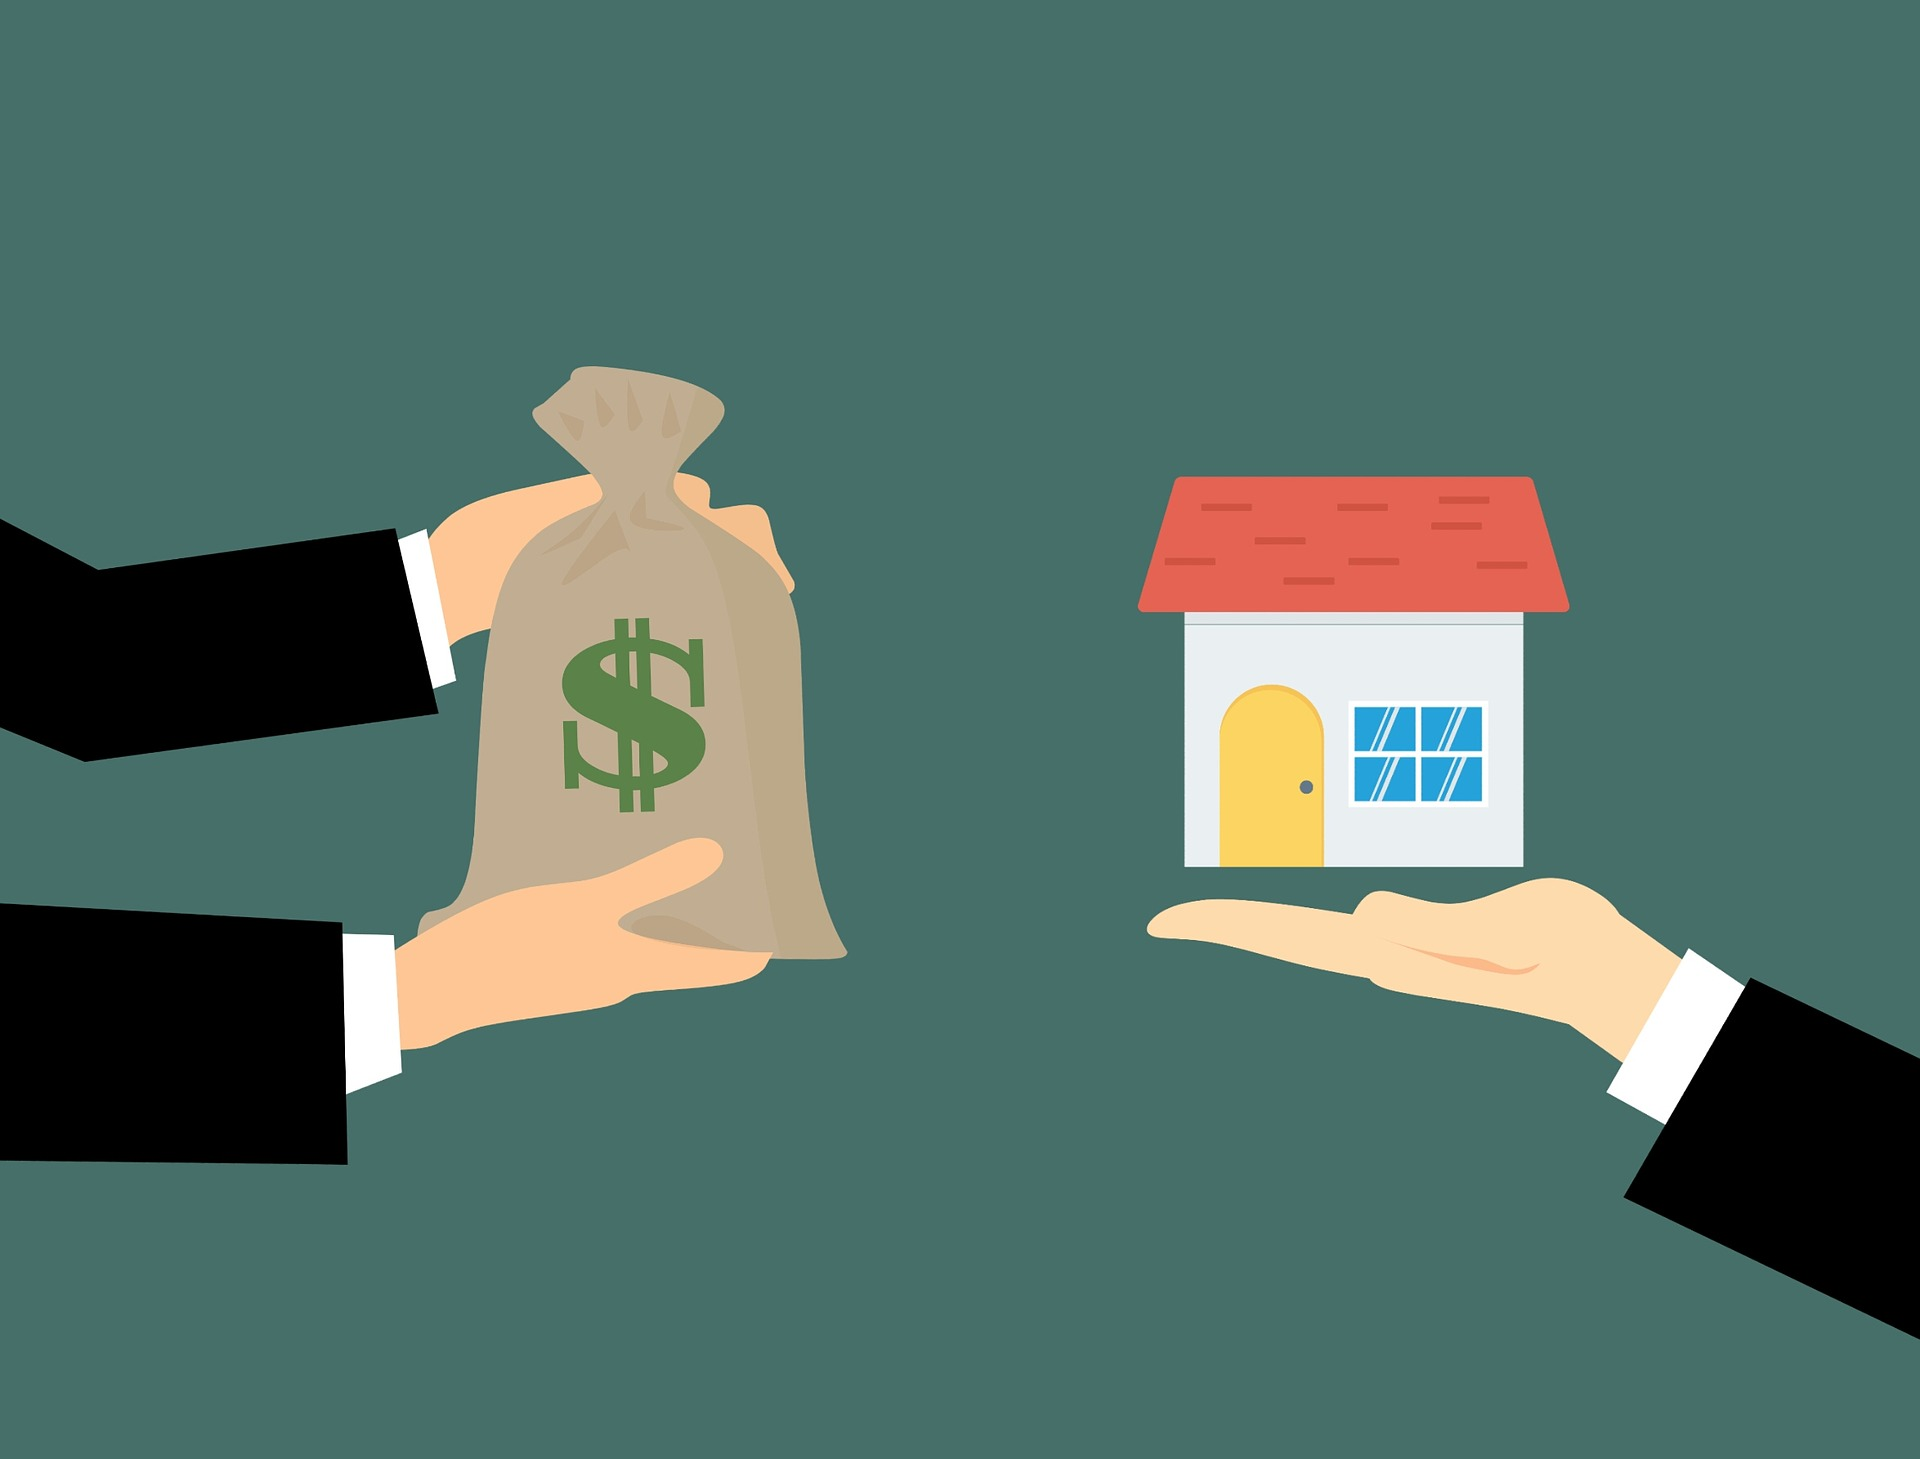 Clip art of a Toronto real estate agent and house.